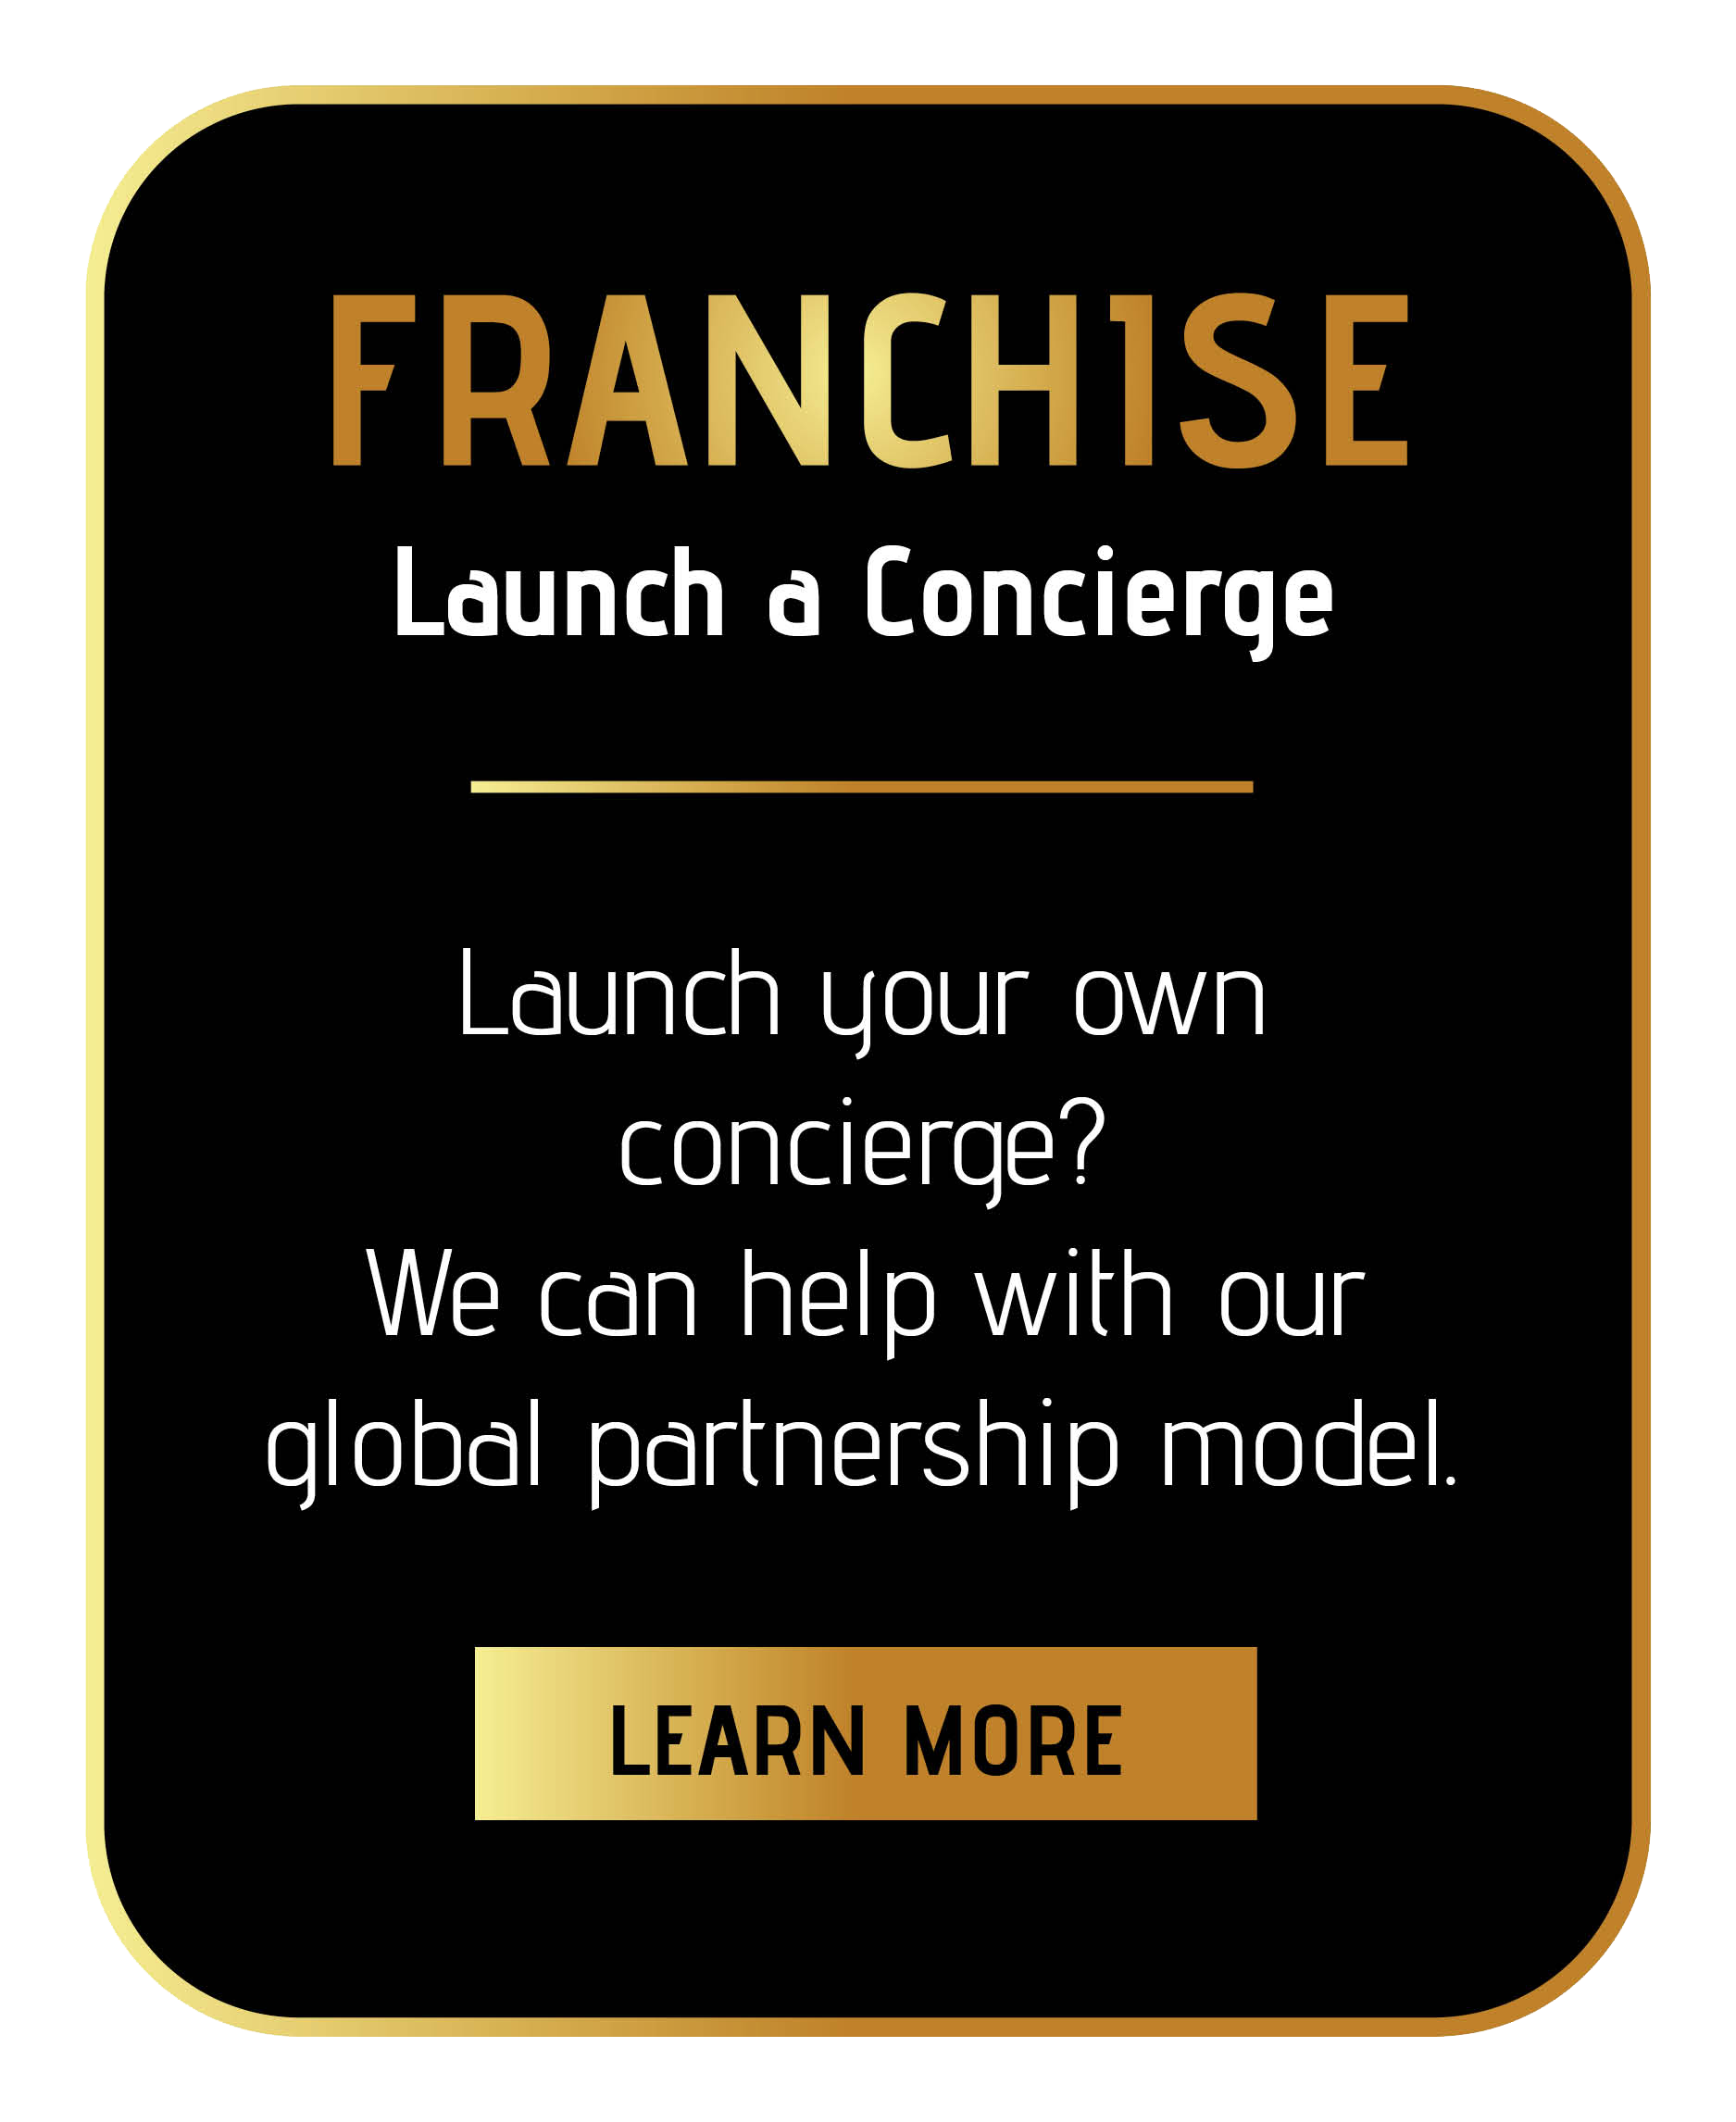 how to buy an award winning concierge service franchise through sincura